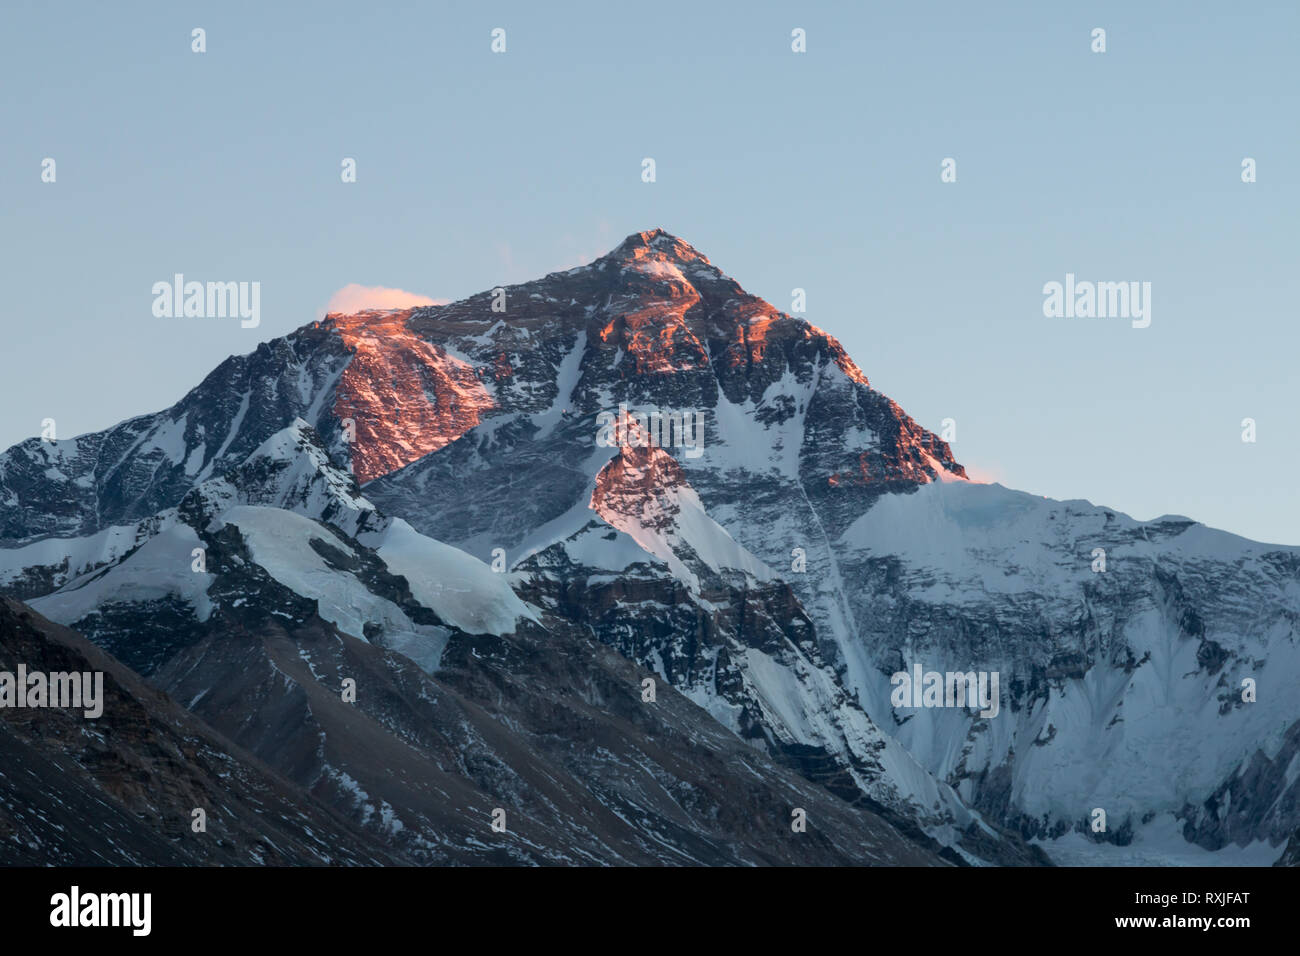 View of Mountain Everest, the highest peak on Earth, at sunset. Viewed from the north (Tibet) side. - Stock Image